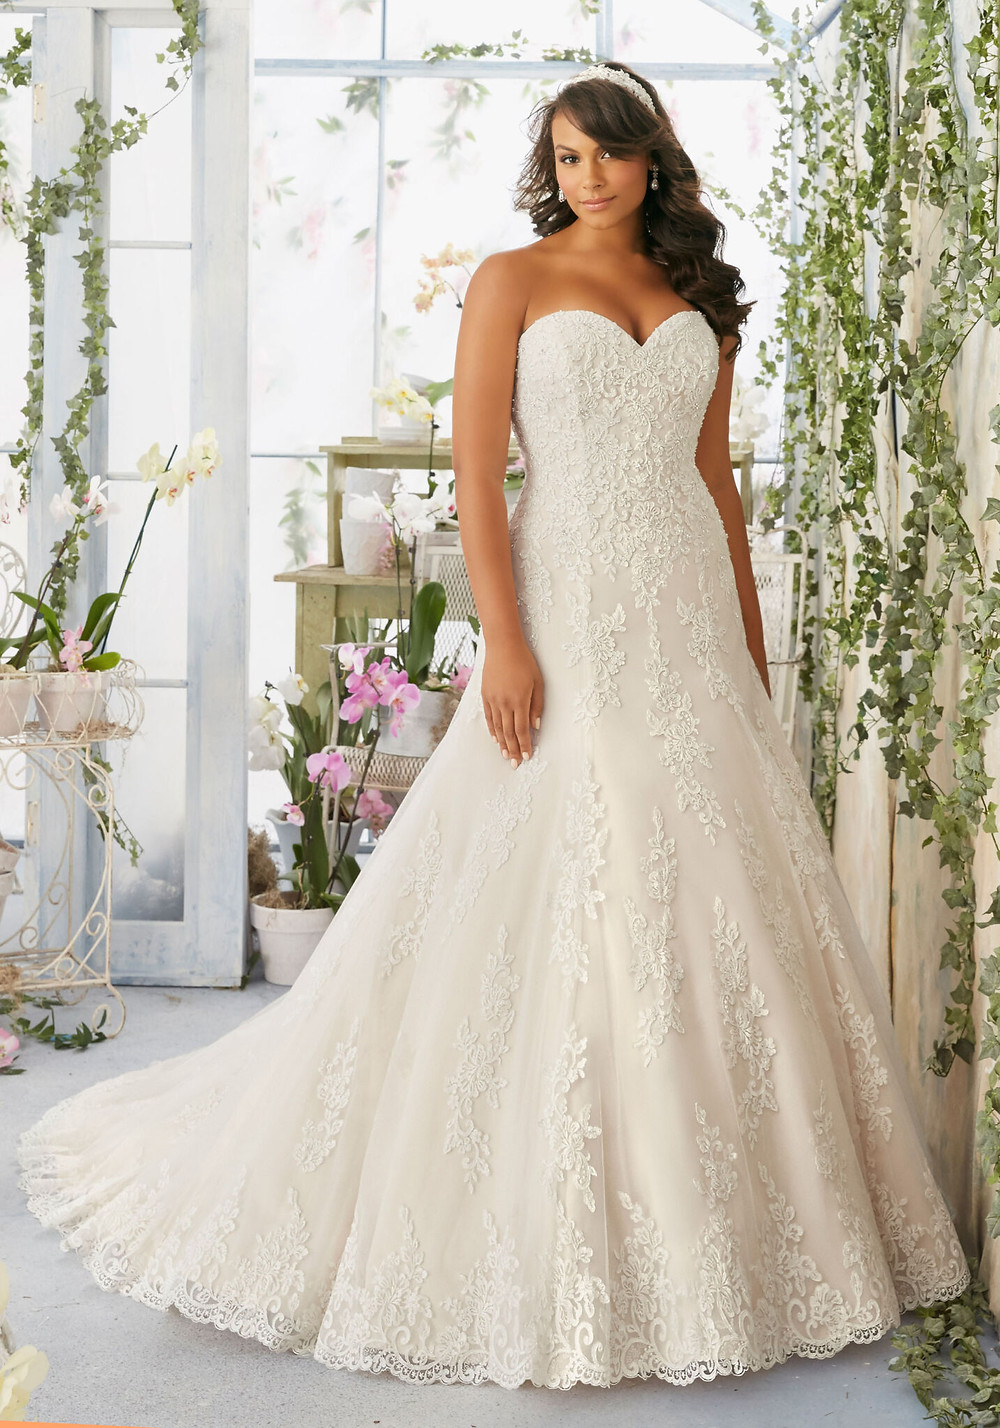 Plus size wedding gown at Amour Bridal Austin Texas